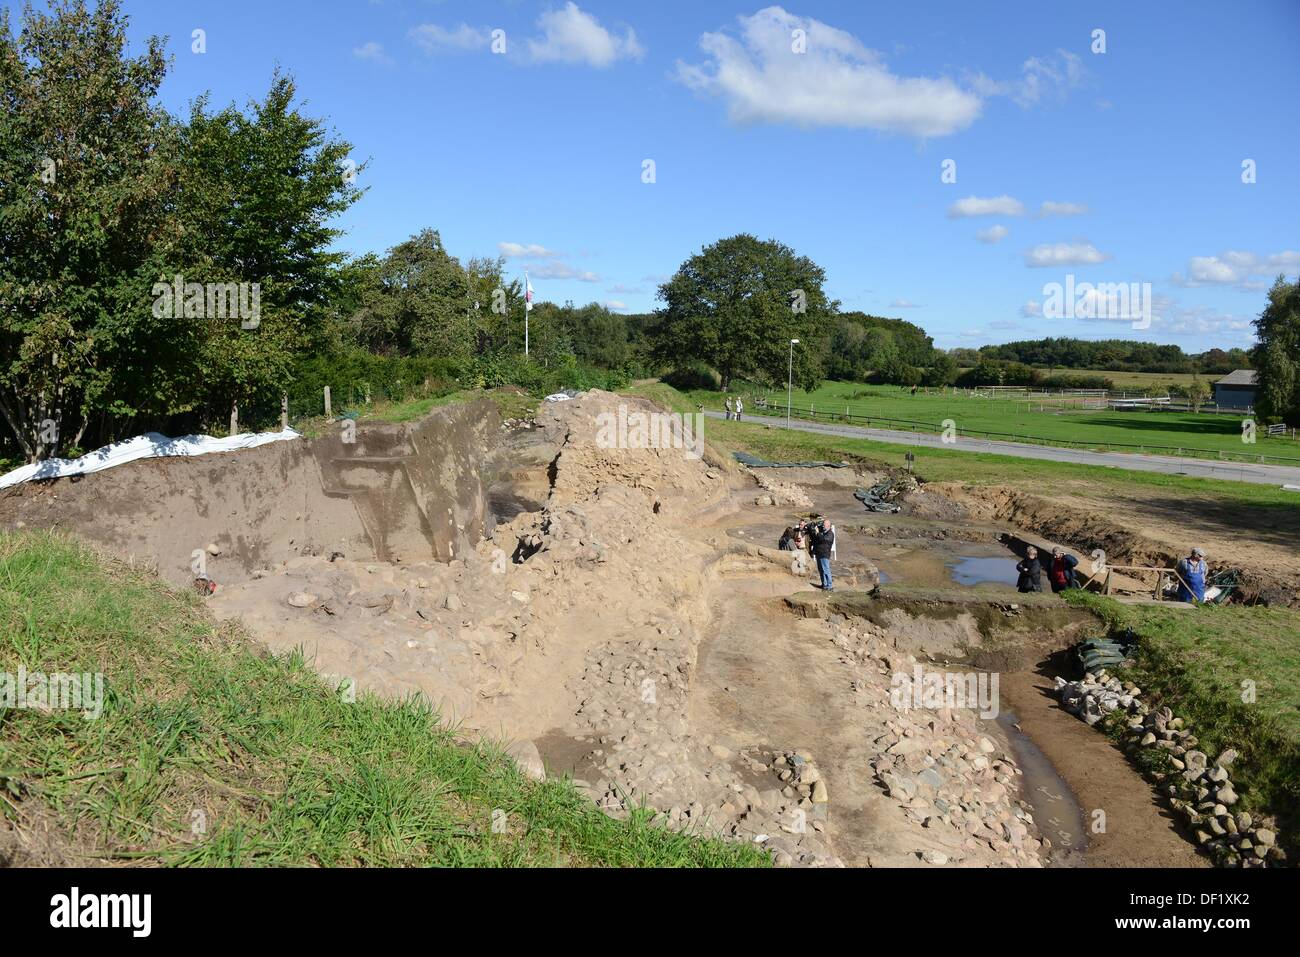 Members of the press inspect a segment of the defensive wall of the archaeological excavation site 'Danewerk' in Dannewerk, Germany, 26 September 2013. The presentation showed a complete cross-section of the early mediaevil defensive wall including archaeological findings of one of northern Europe's largest archaeological heritage sites, which date back to 540 AD. PHOTO: BENJAMIN NOLTE - Stock Image